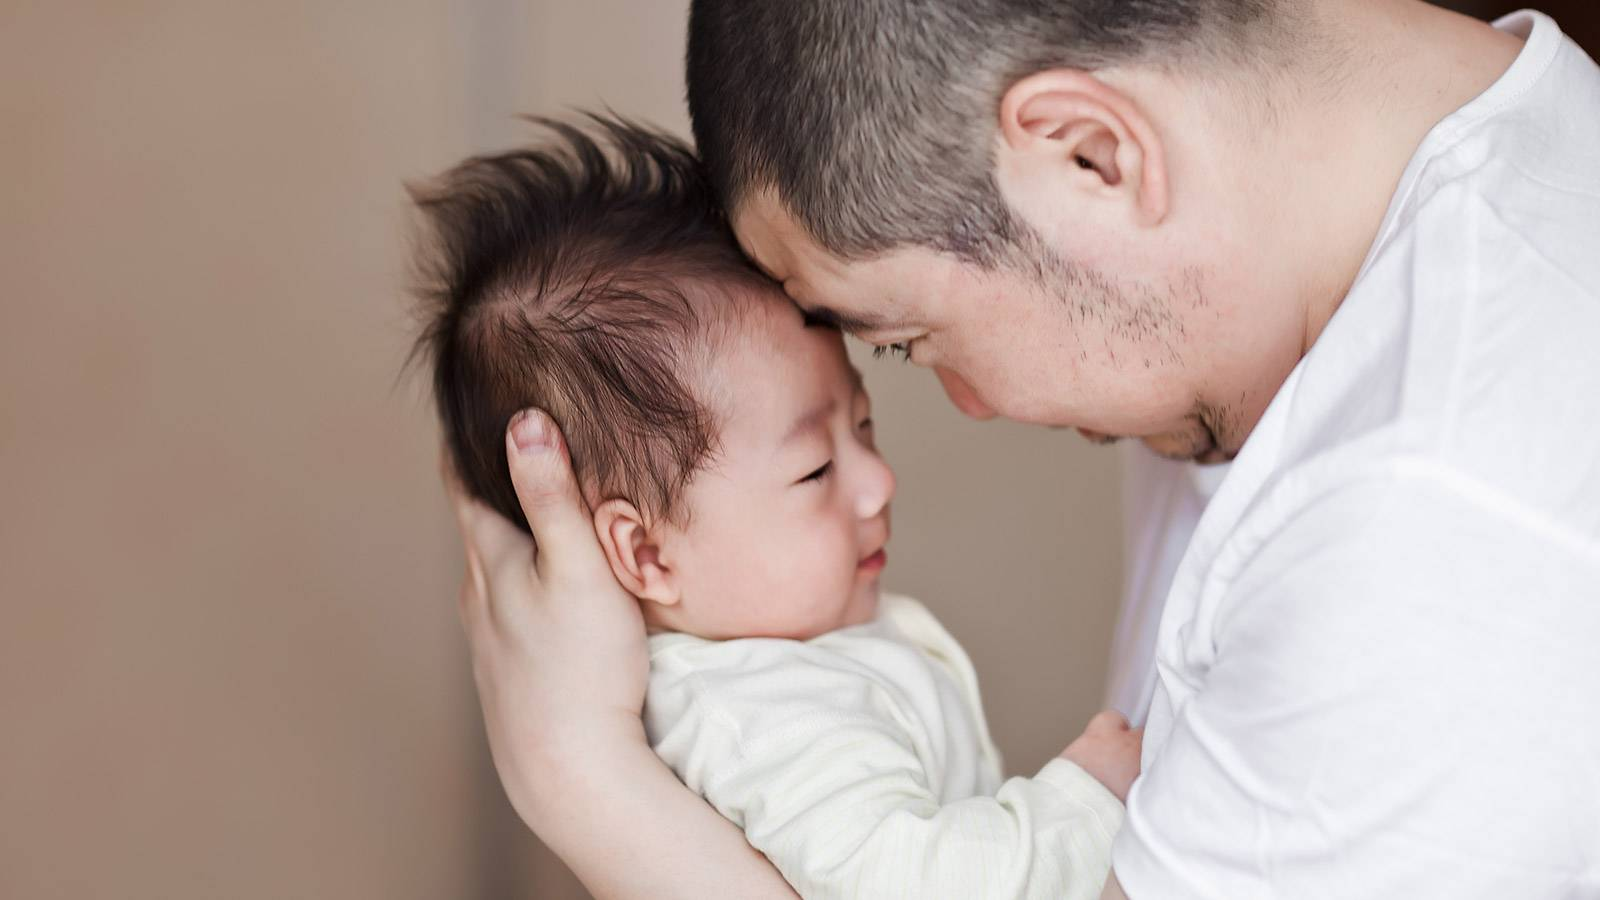 Parents Dads to get more paternity leave benefits Main